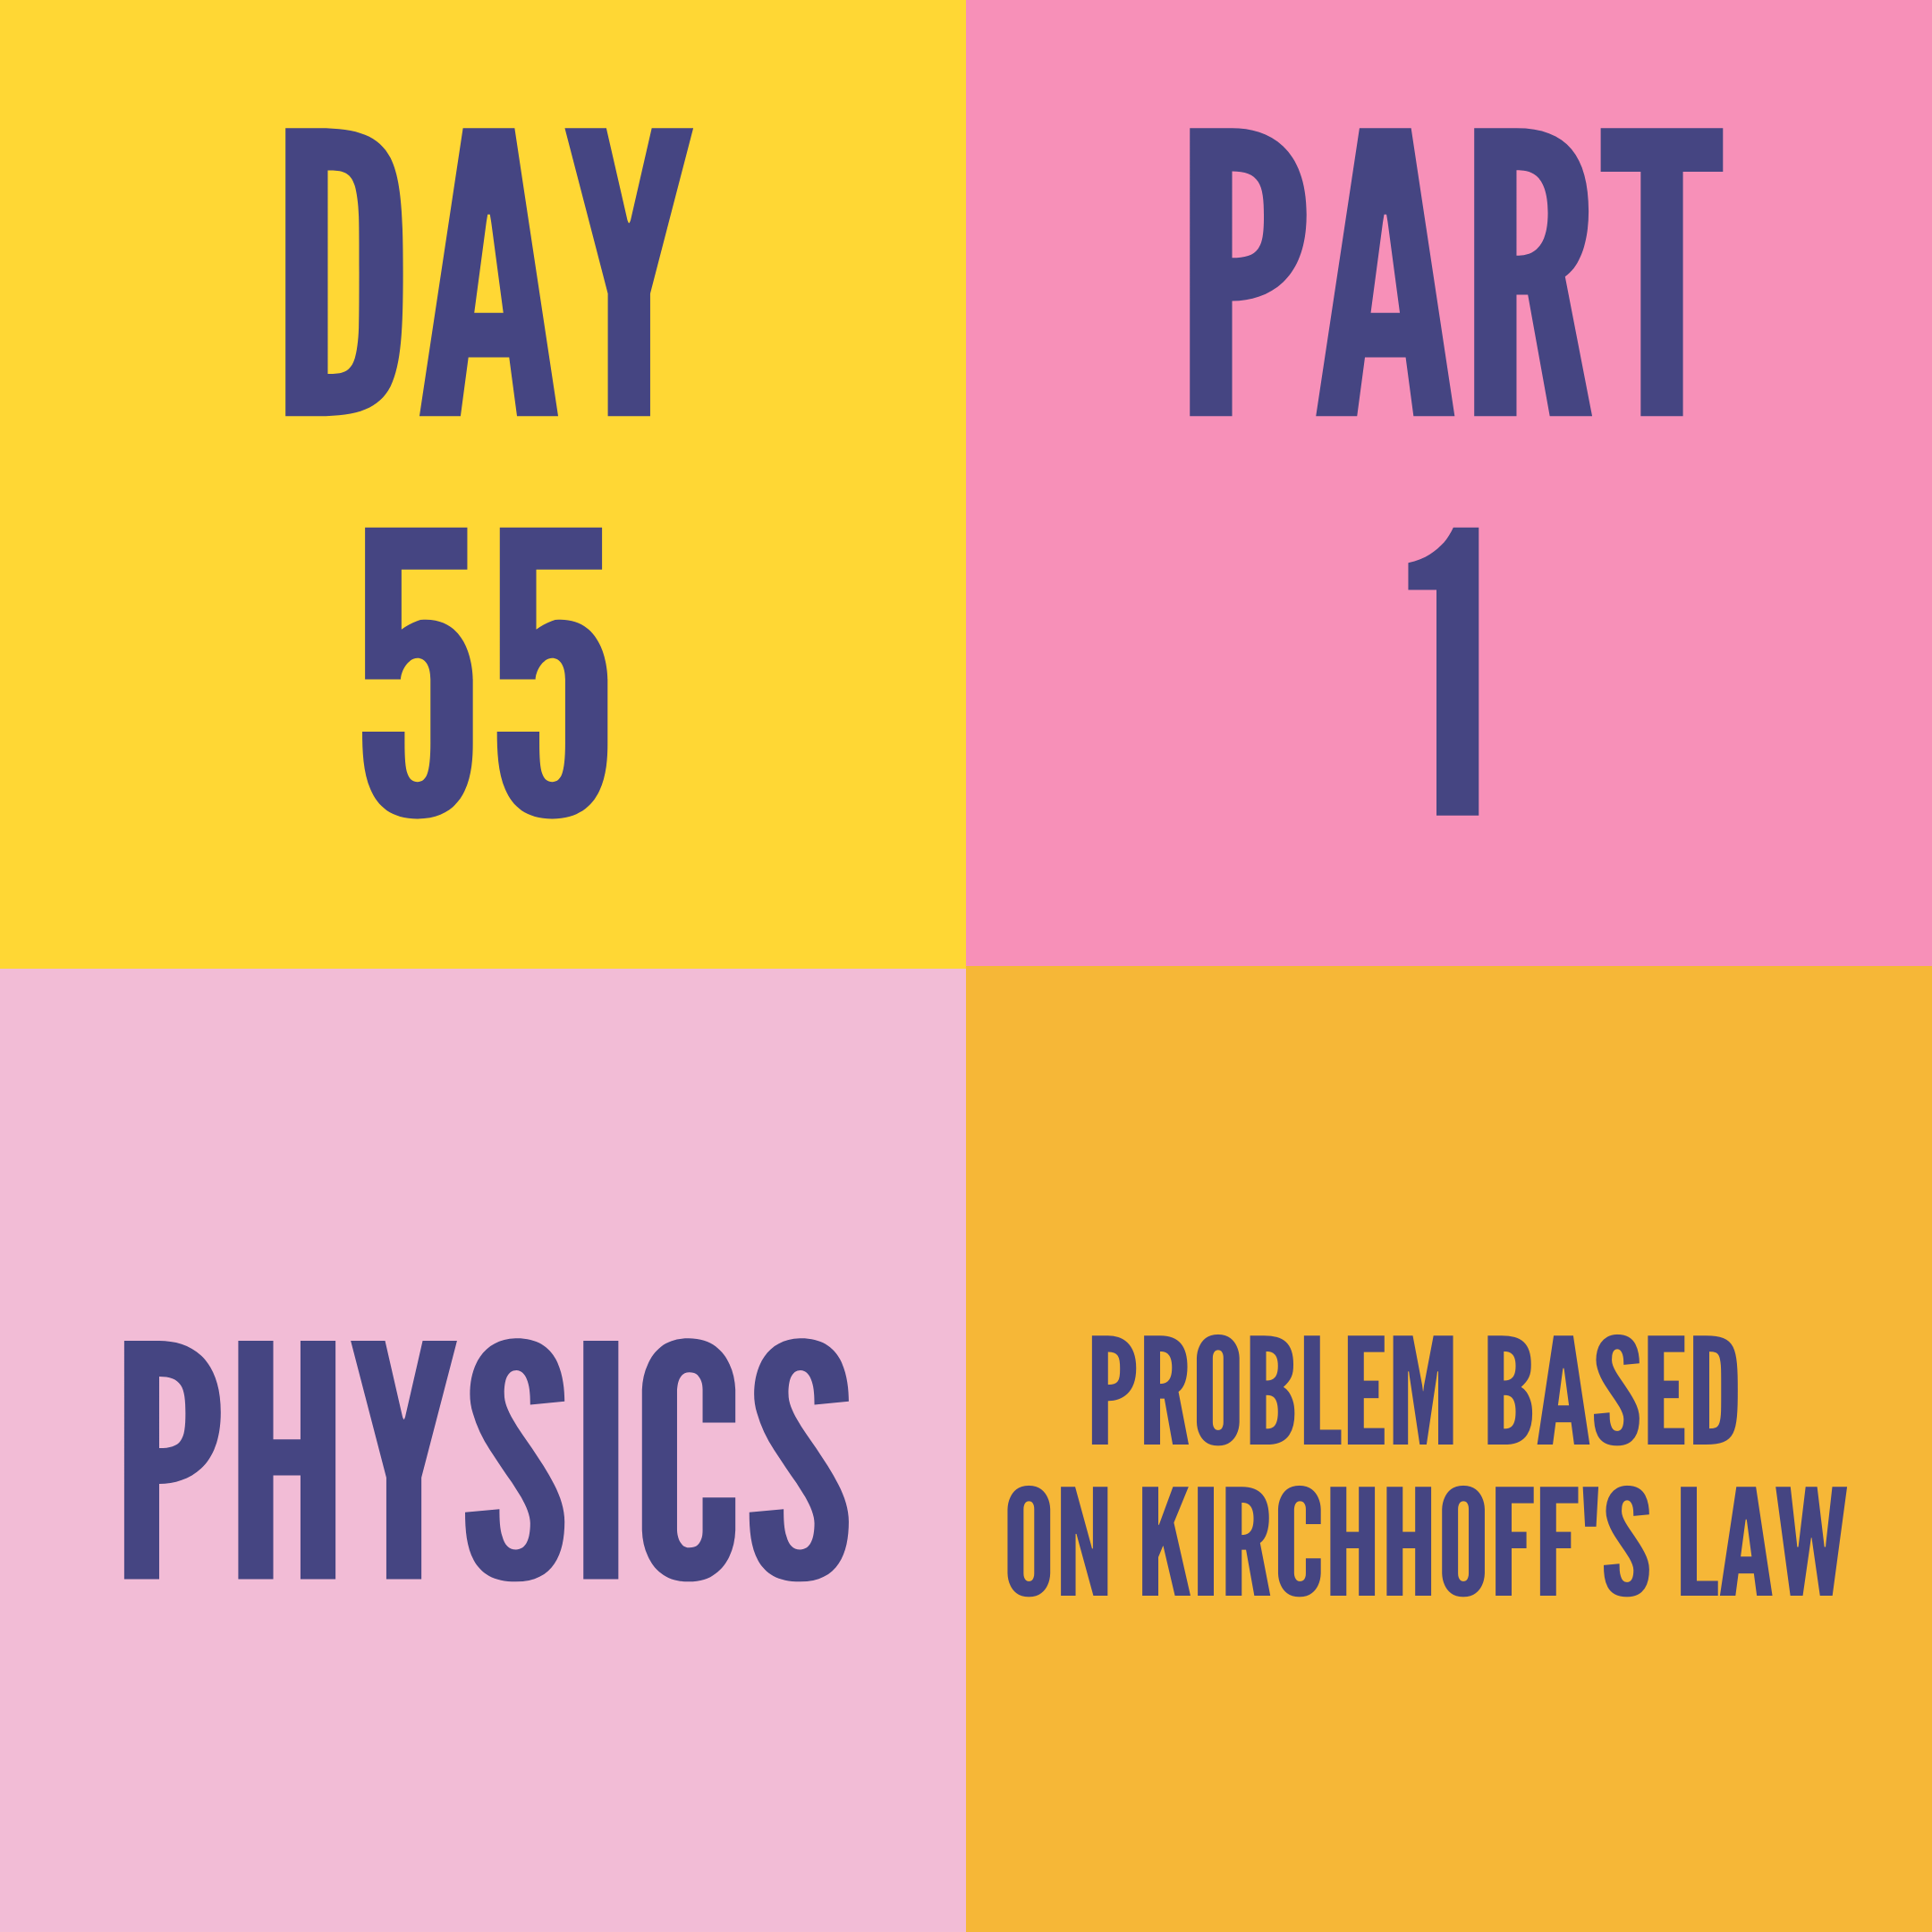 DAY-55 PART-1  PROBLEM BASED ON KIRCHHOFF'S LAW